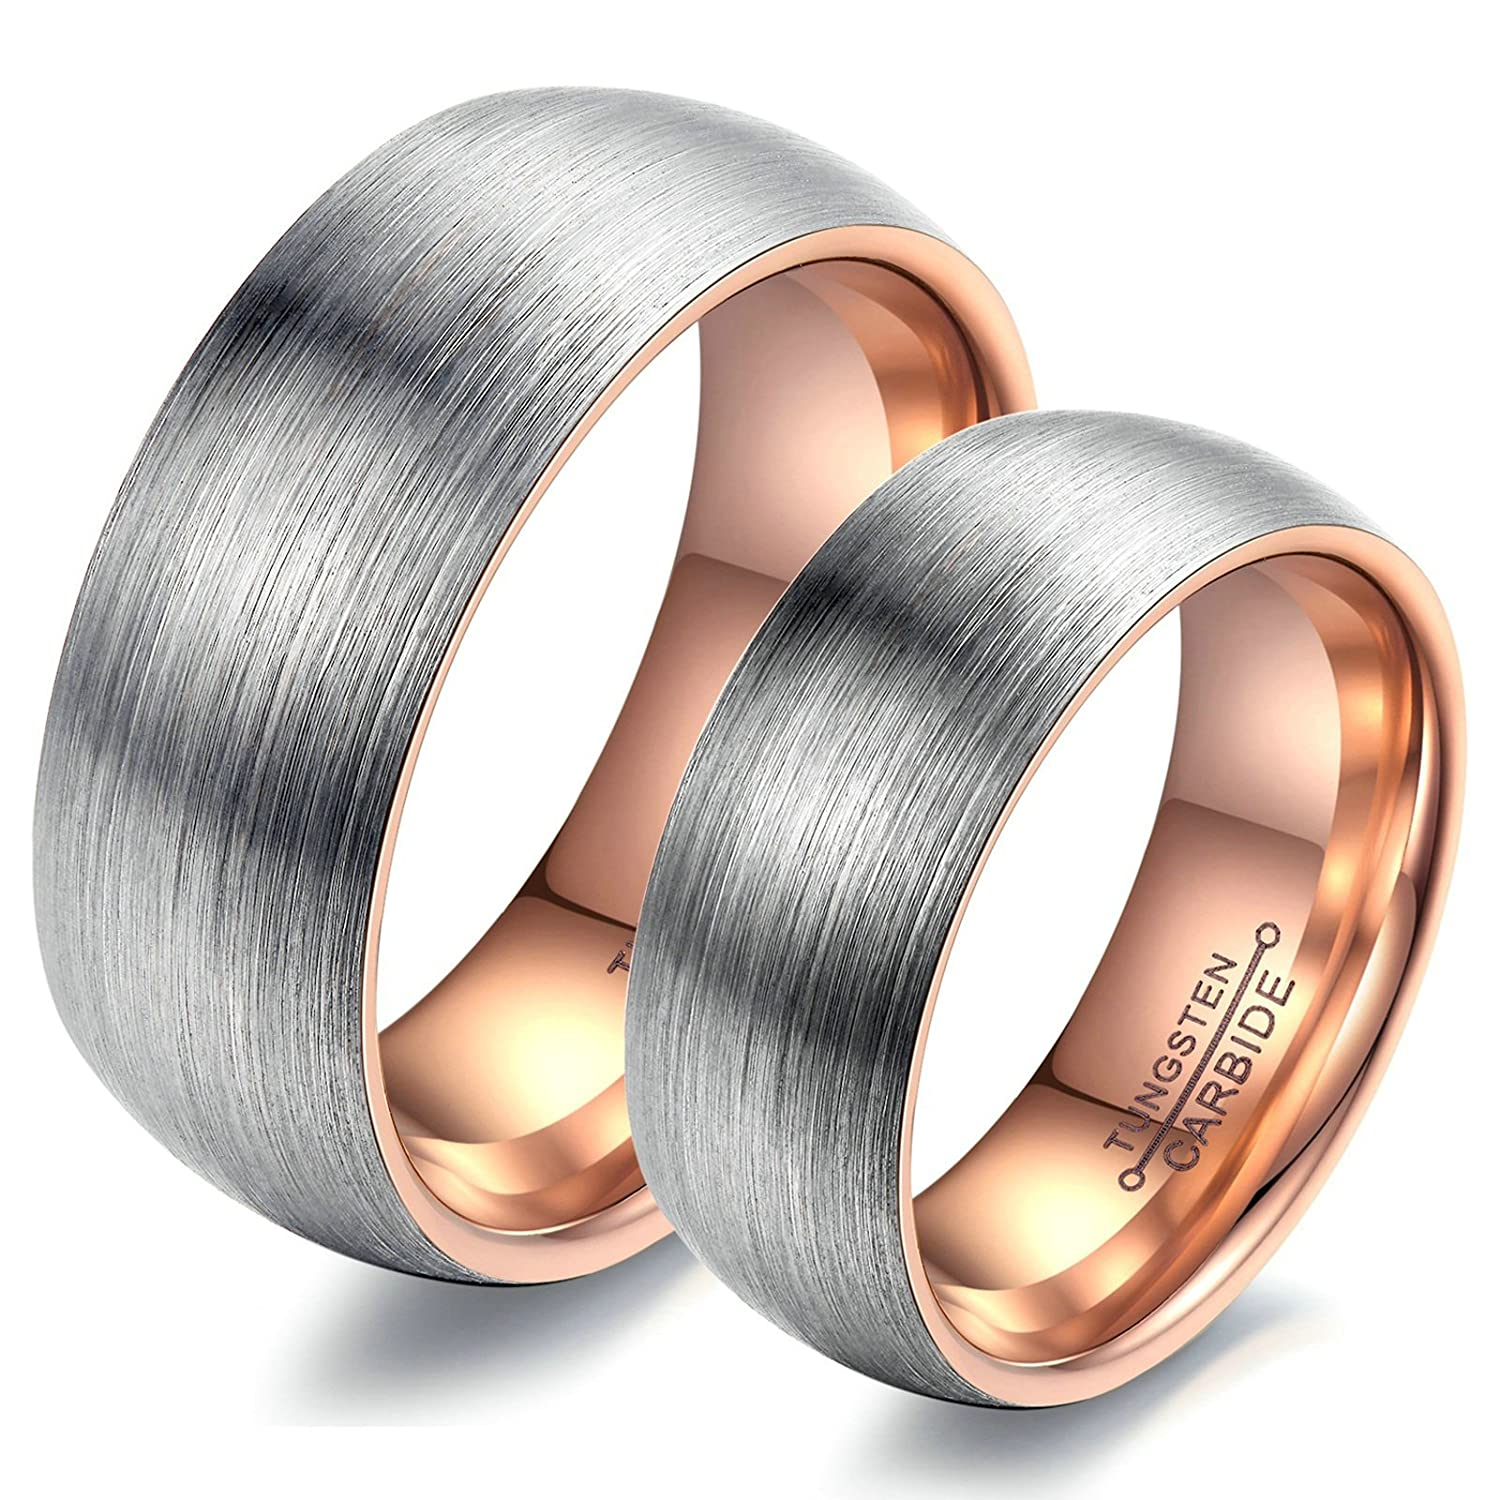 Beydodo His and Hers Rings Men Size Men Size 8 and Women Size 6 Brushed Finished Silver Rose Gold